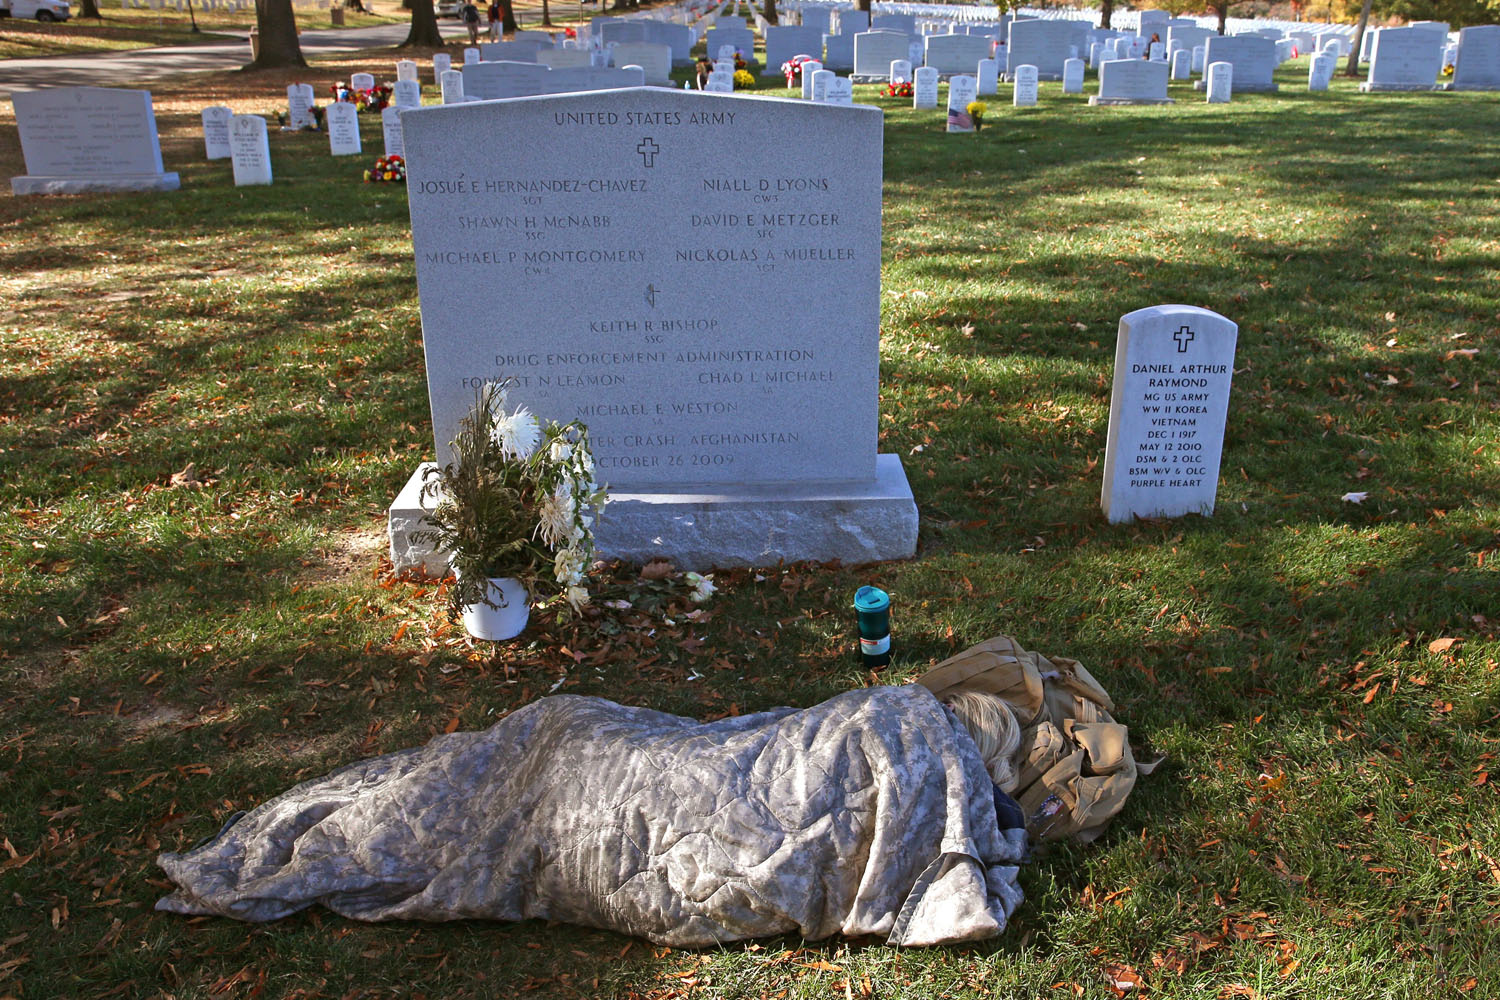 Nov. 11, 2013. Sarah Stanczyk lays covered up at the gravesite of her husband, SFC David Metzger, who was killed in Afghanistan in 2009, at Section 60 in Arlington Cemetery on Veterans Day.